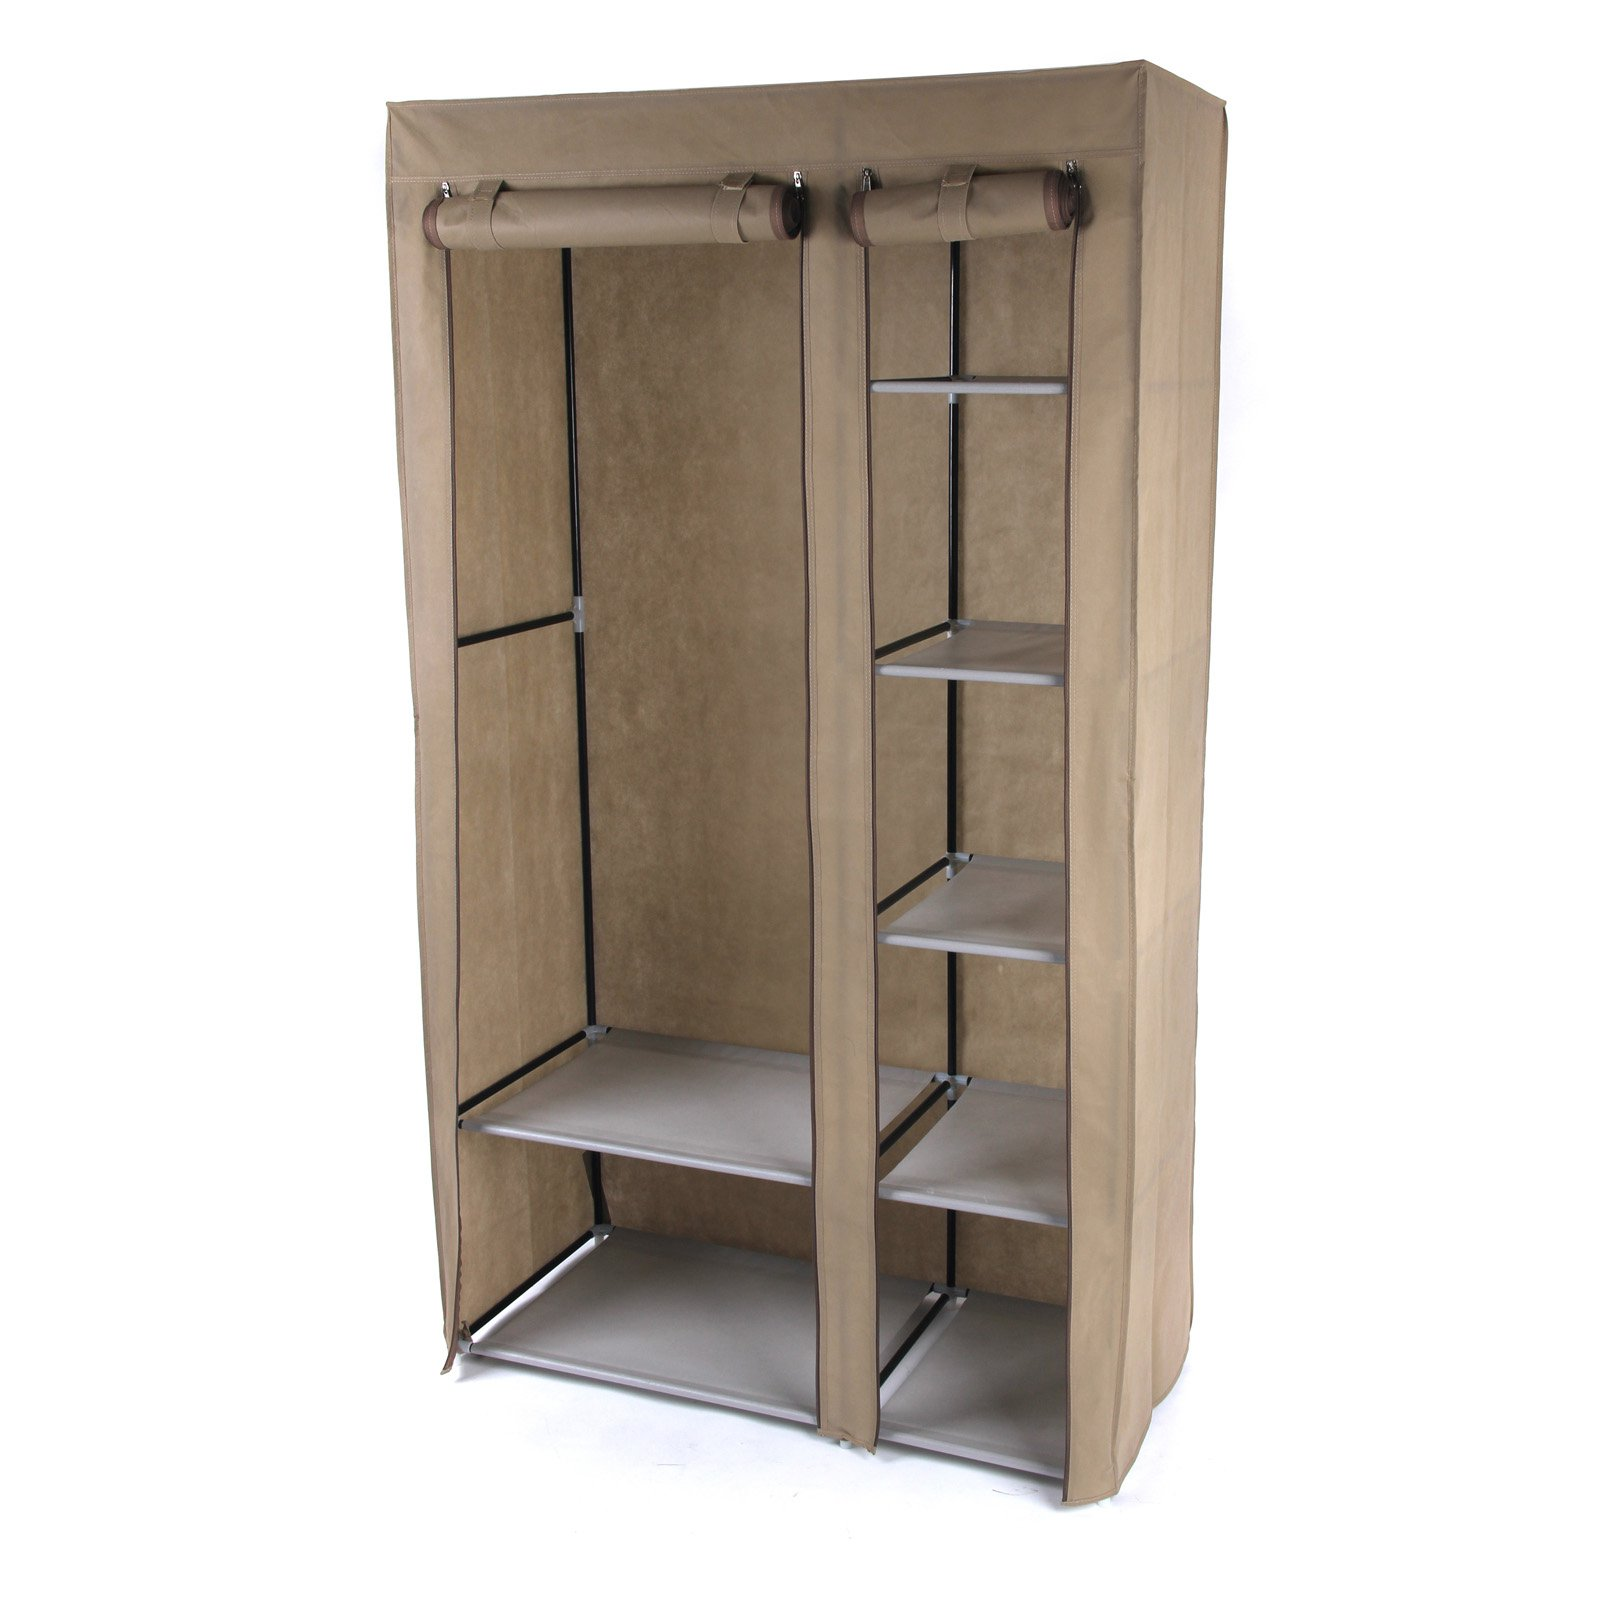 Gold Sparrow 3.2 ft. Portable Storage Wardrobe